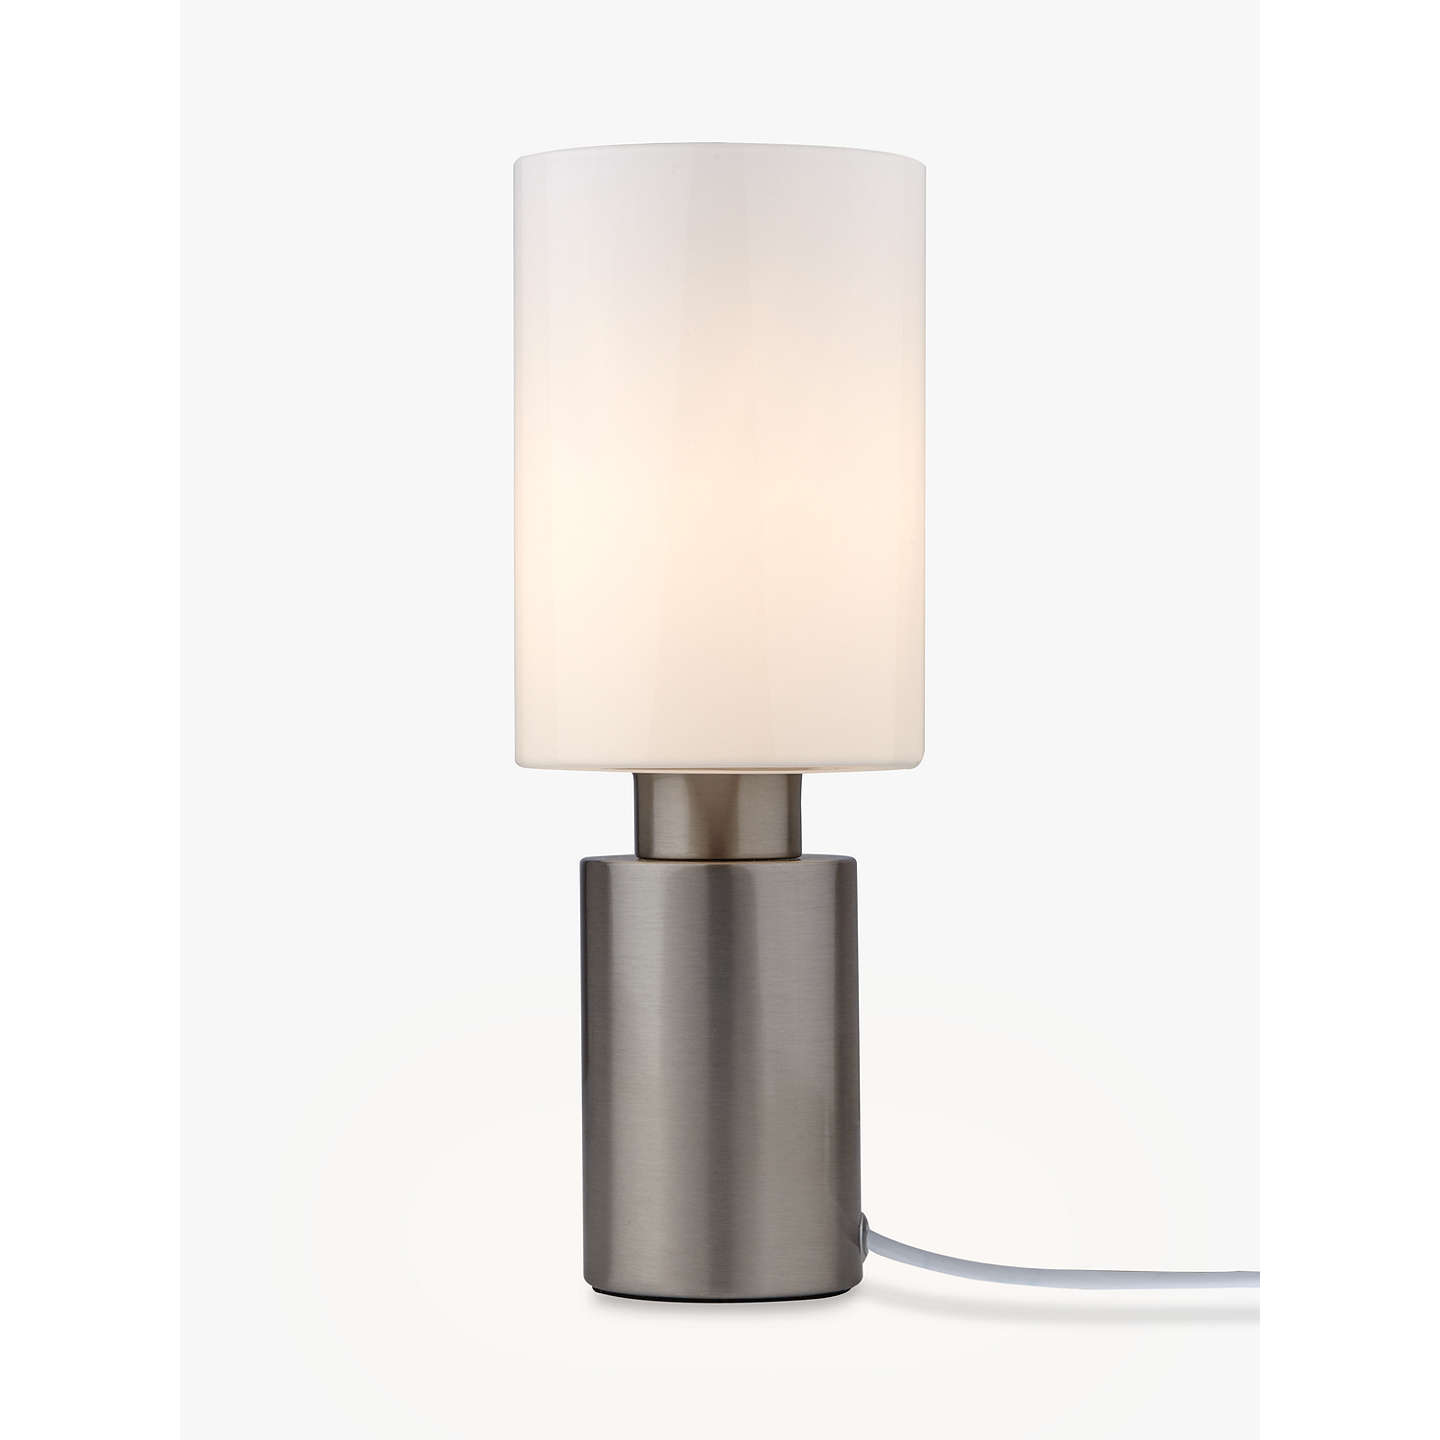 John lewis river touch table lamp satin nickel at john lewis buyjohn lewis river touch table lamp satin nickel online at johnlewis aloadofball Gallery